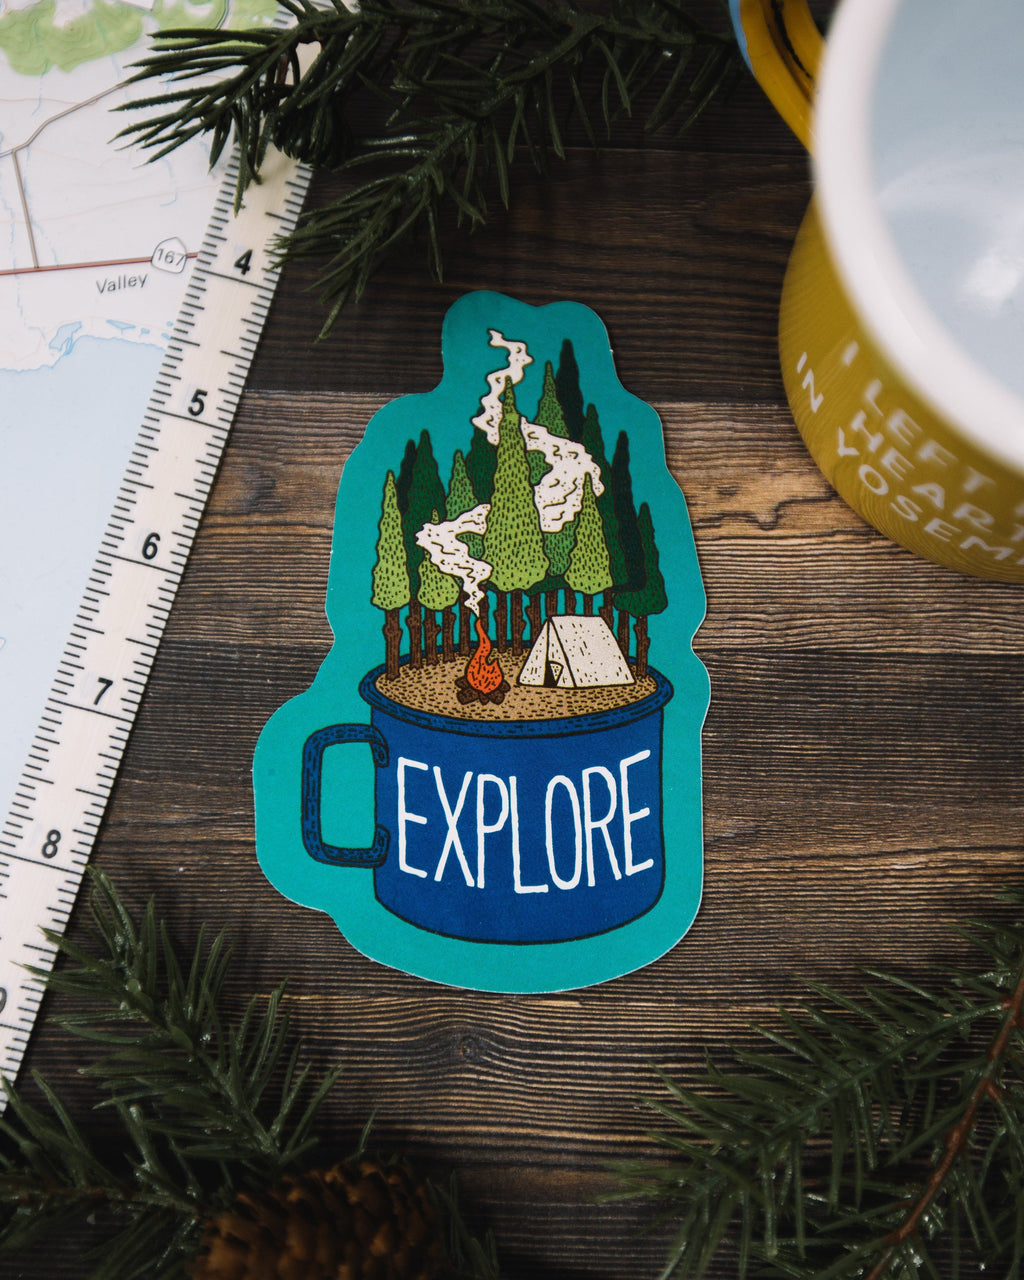 Camp Cup Explore Sticker - The Parks Apparel